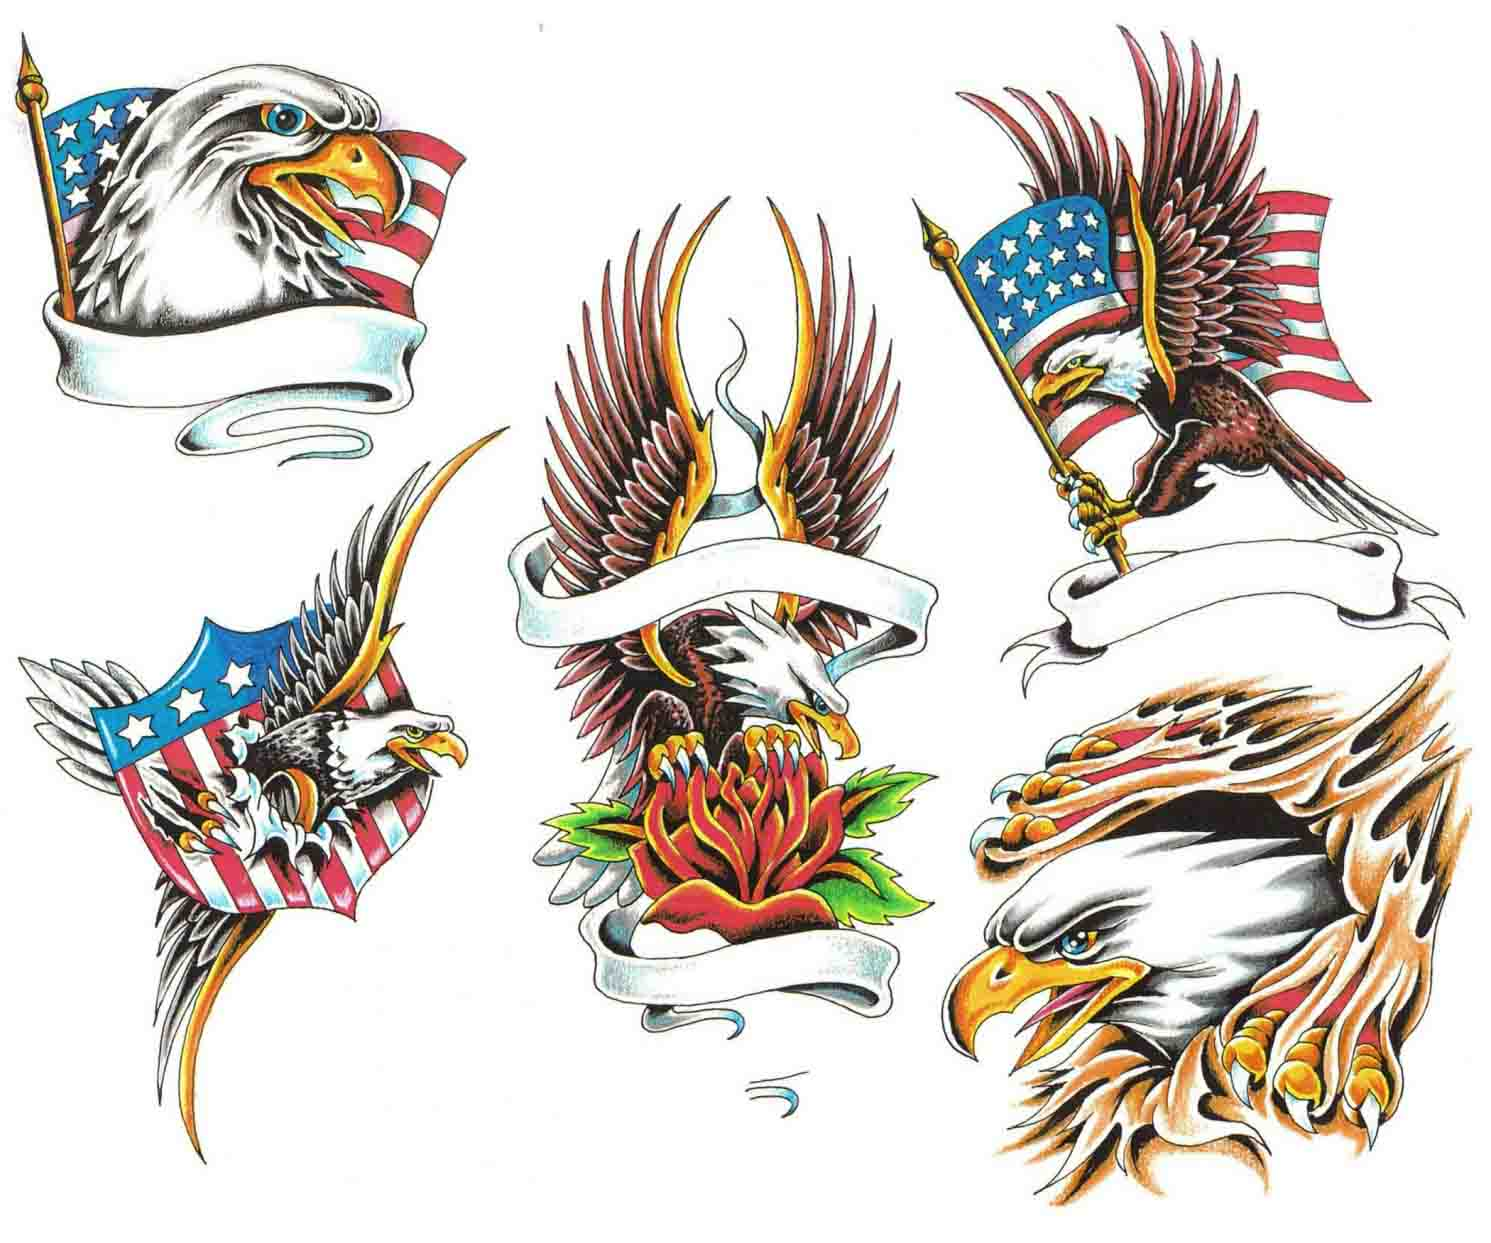 Tattoo Imagn: Attraction Of Eagle Tattoos Designs